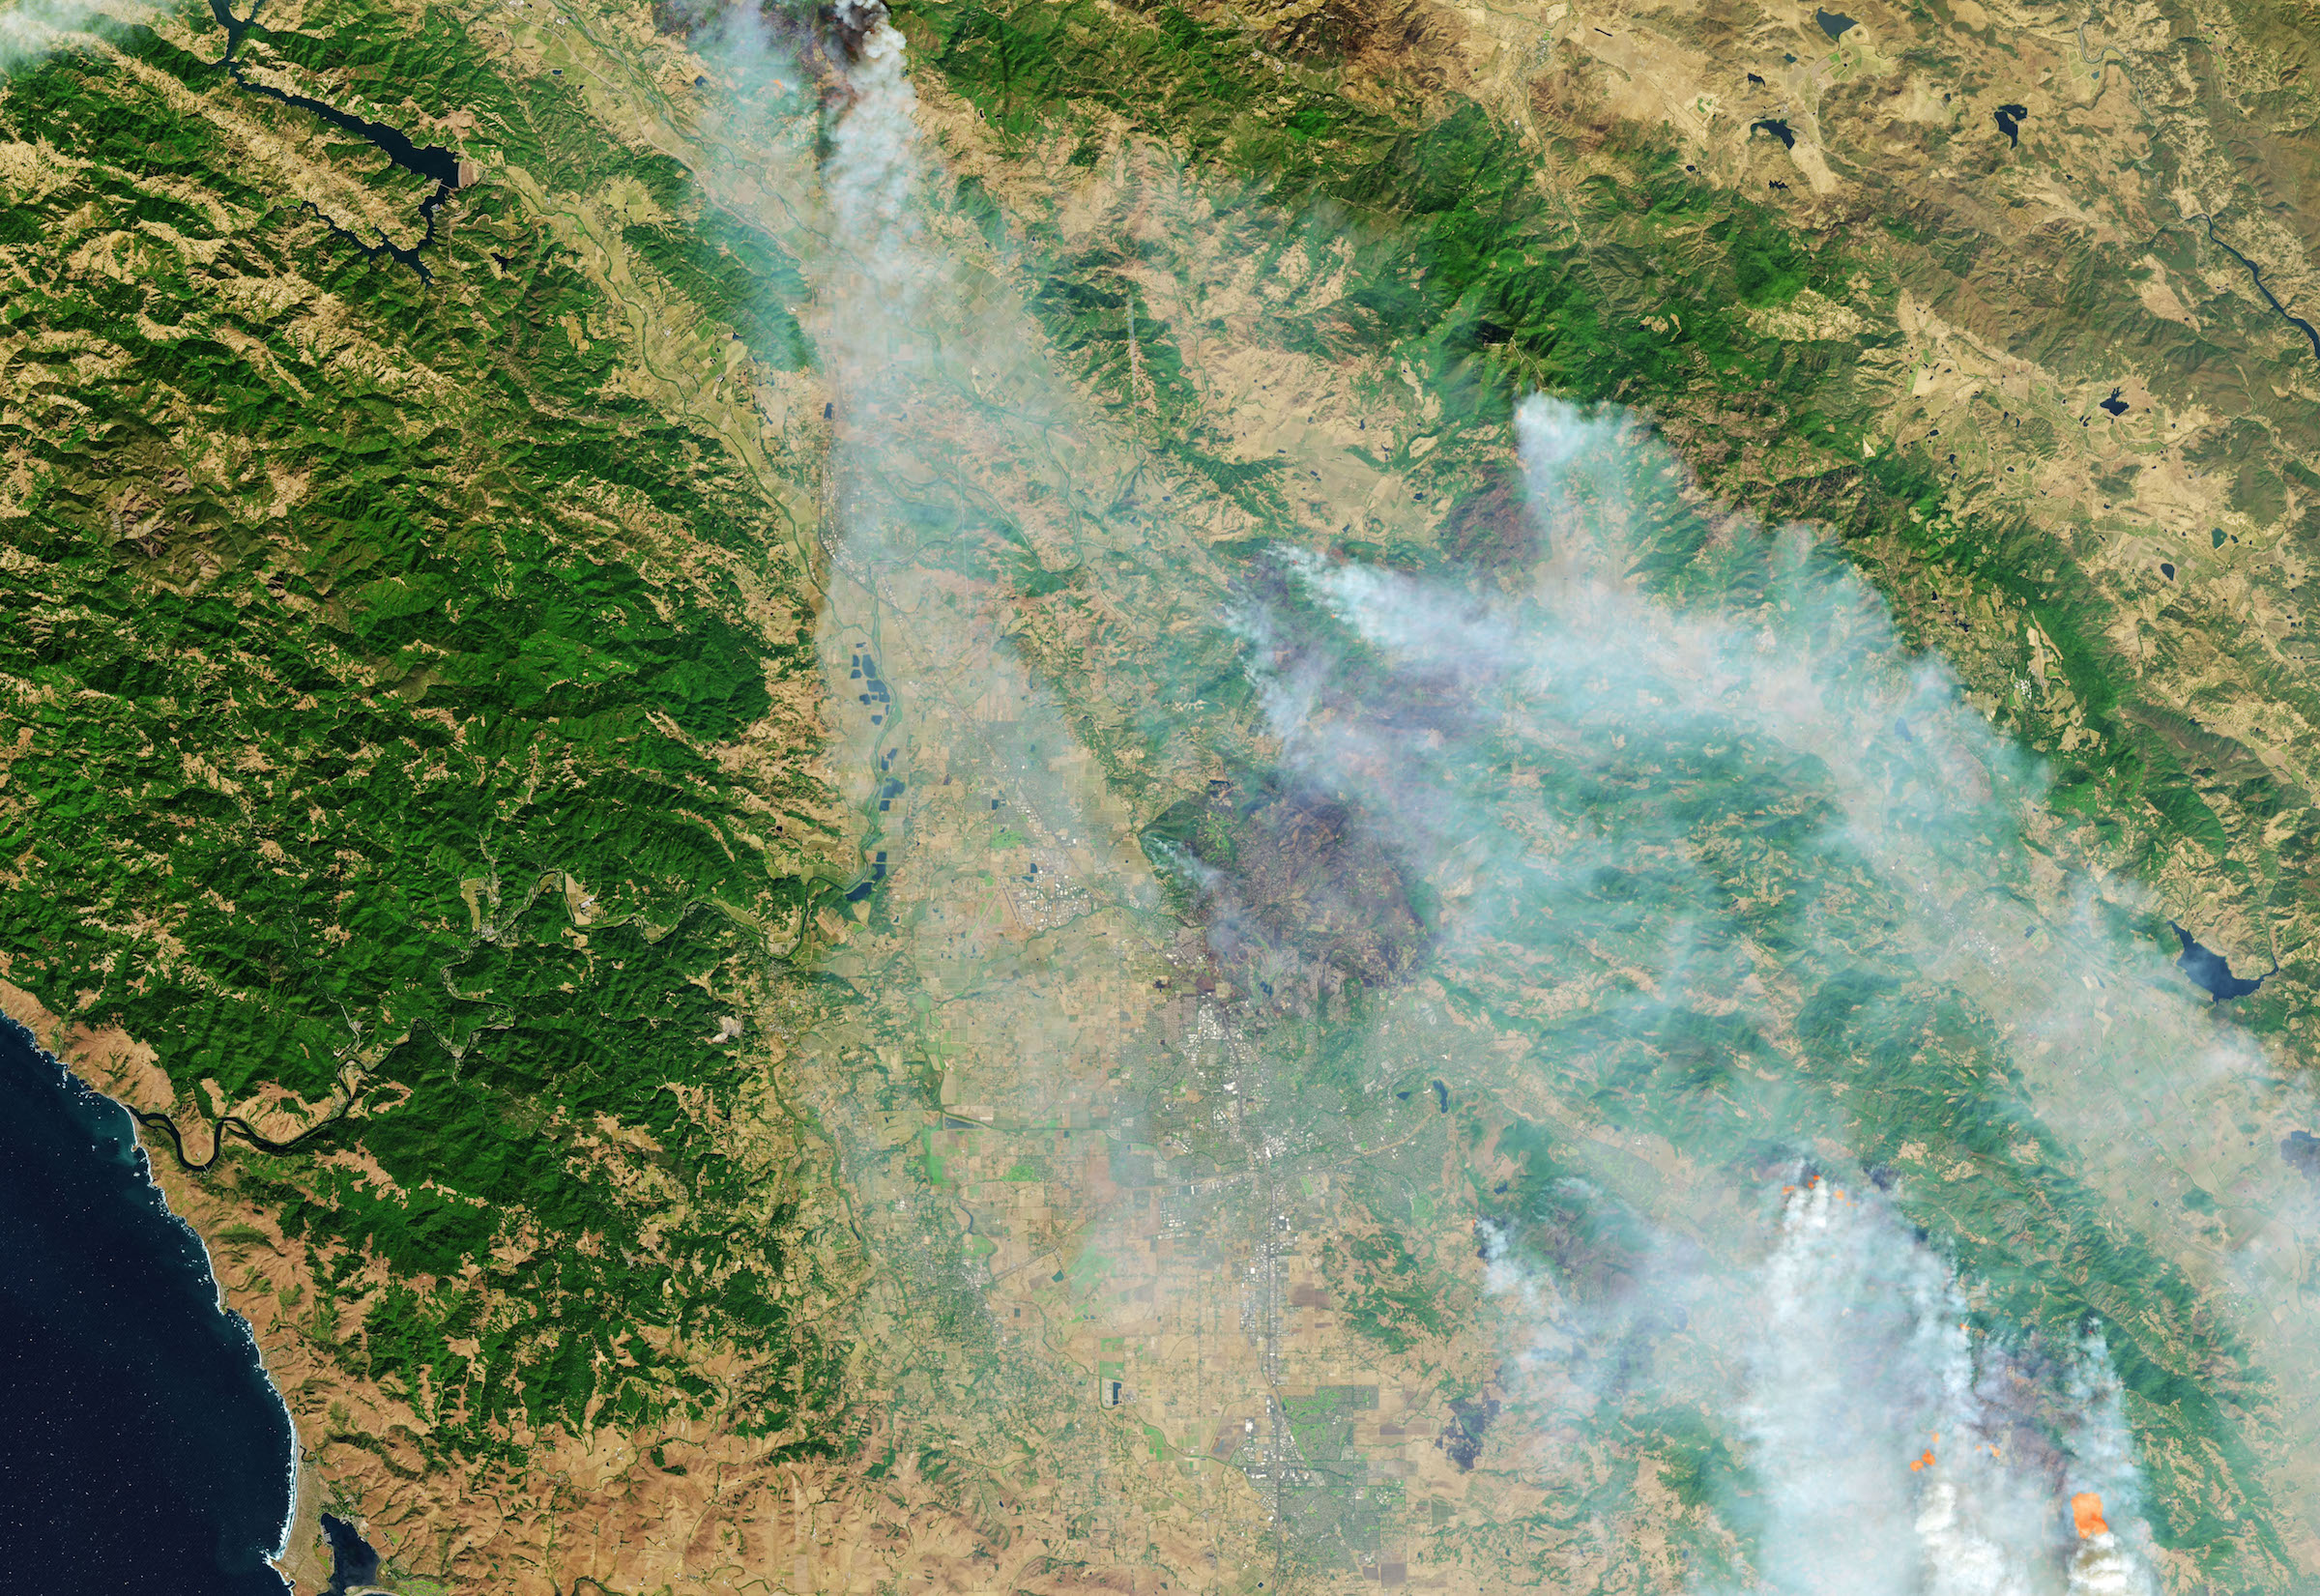 Today's Image of the Day comes from the NASA Earth Observatory and features a look at the aftermath of wildfires in Santa Rosa, California.